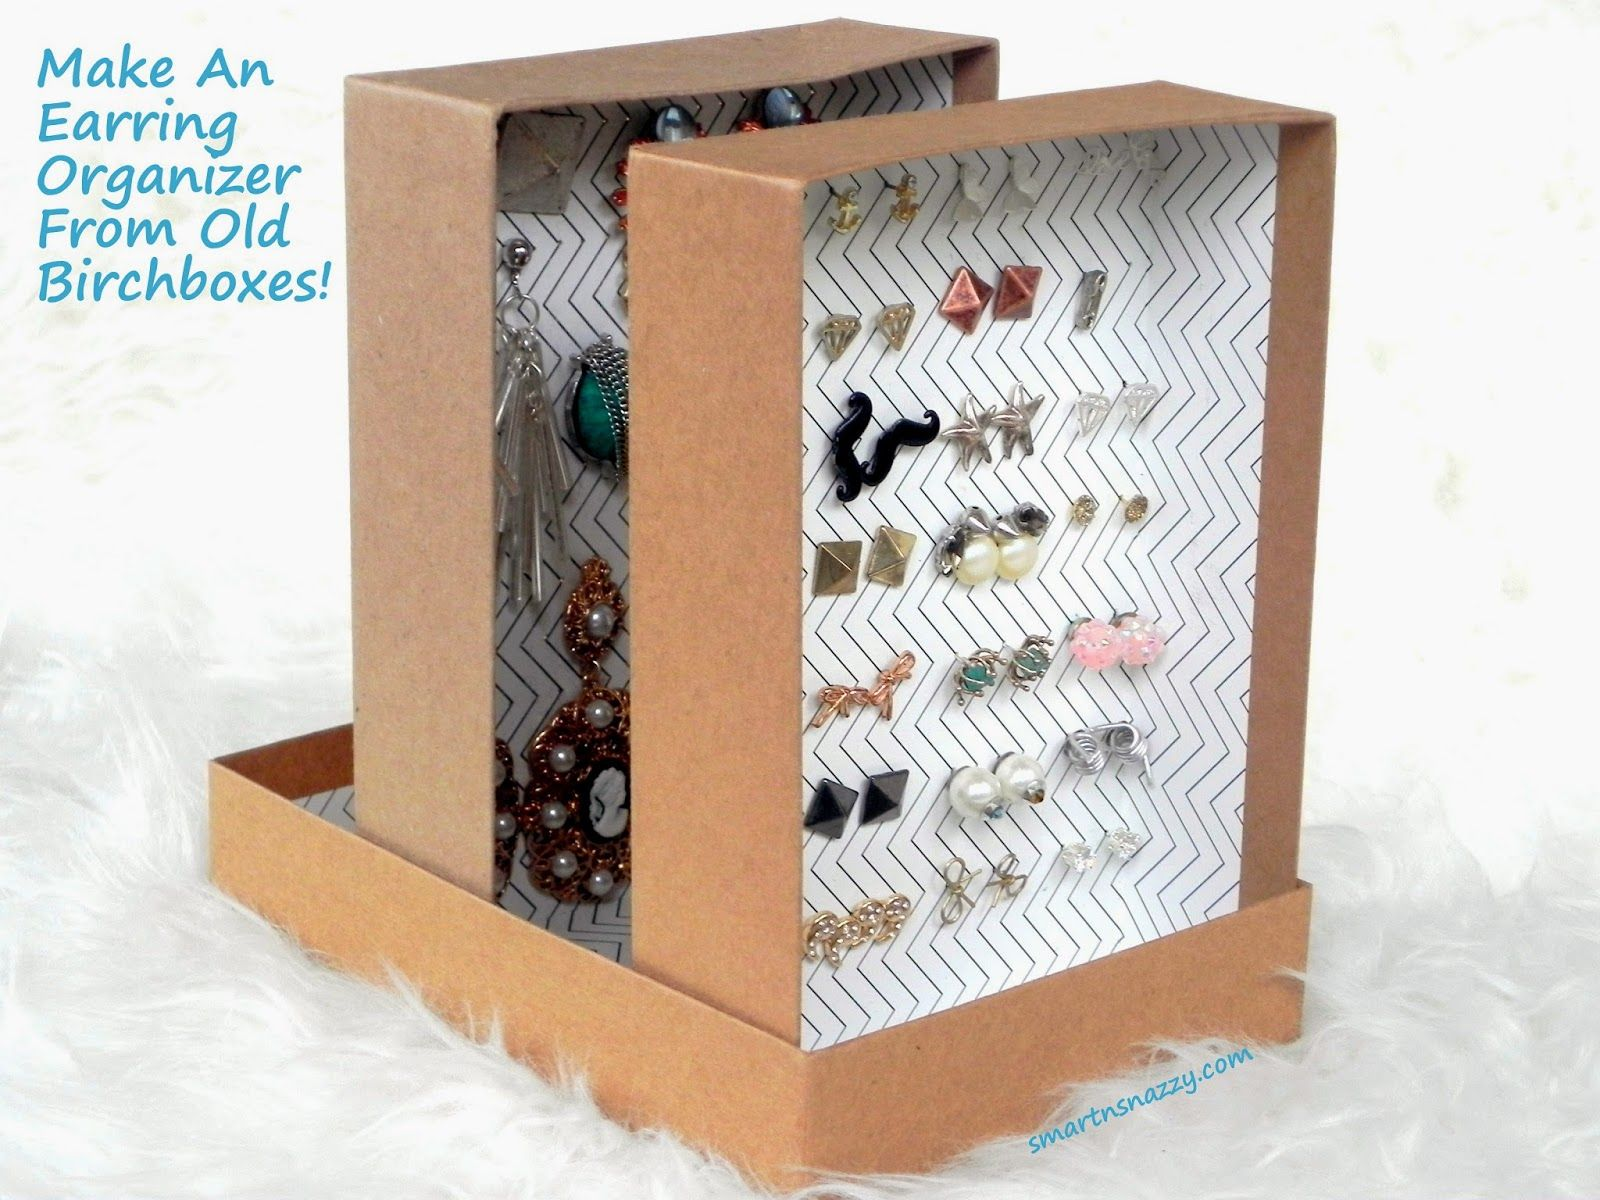 Diy Upcycled Birchboxes Into Earring Organizer Shoe Box Crafts Diy Earring Holder Shoe Box Diy